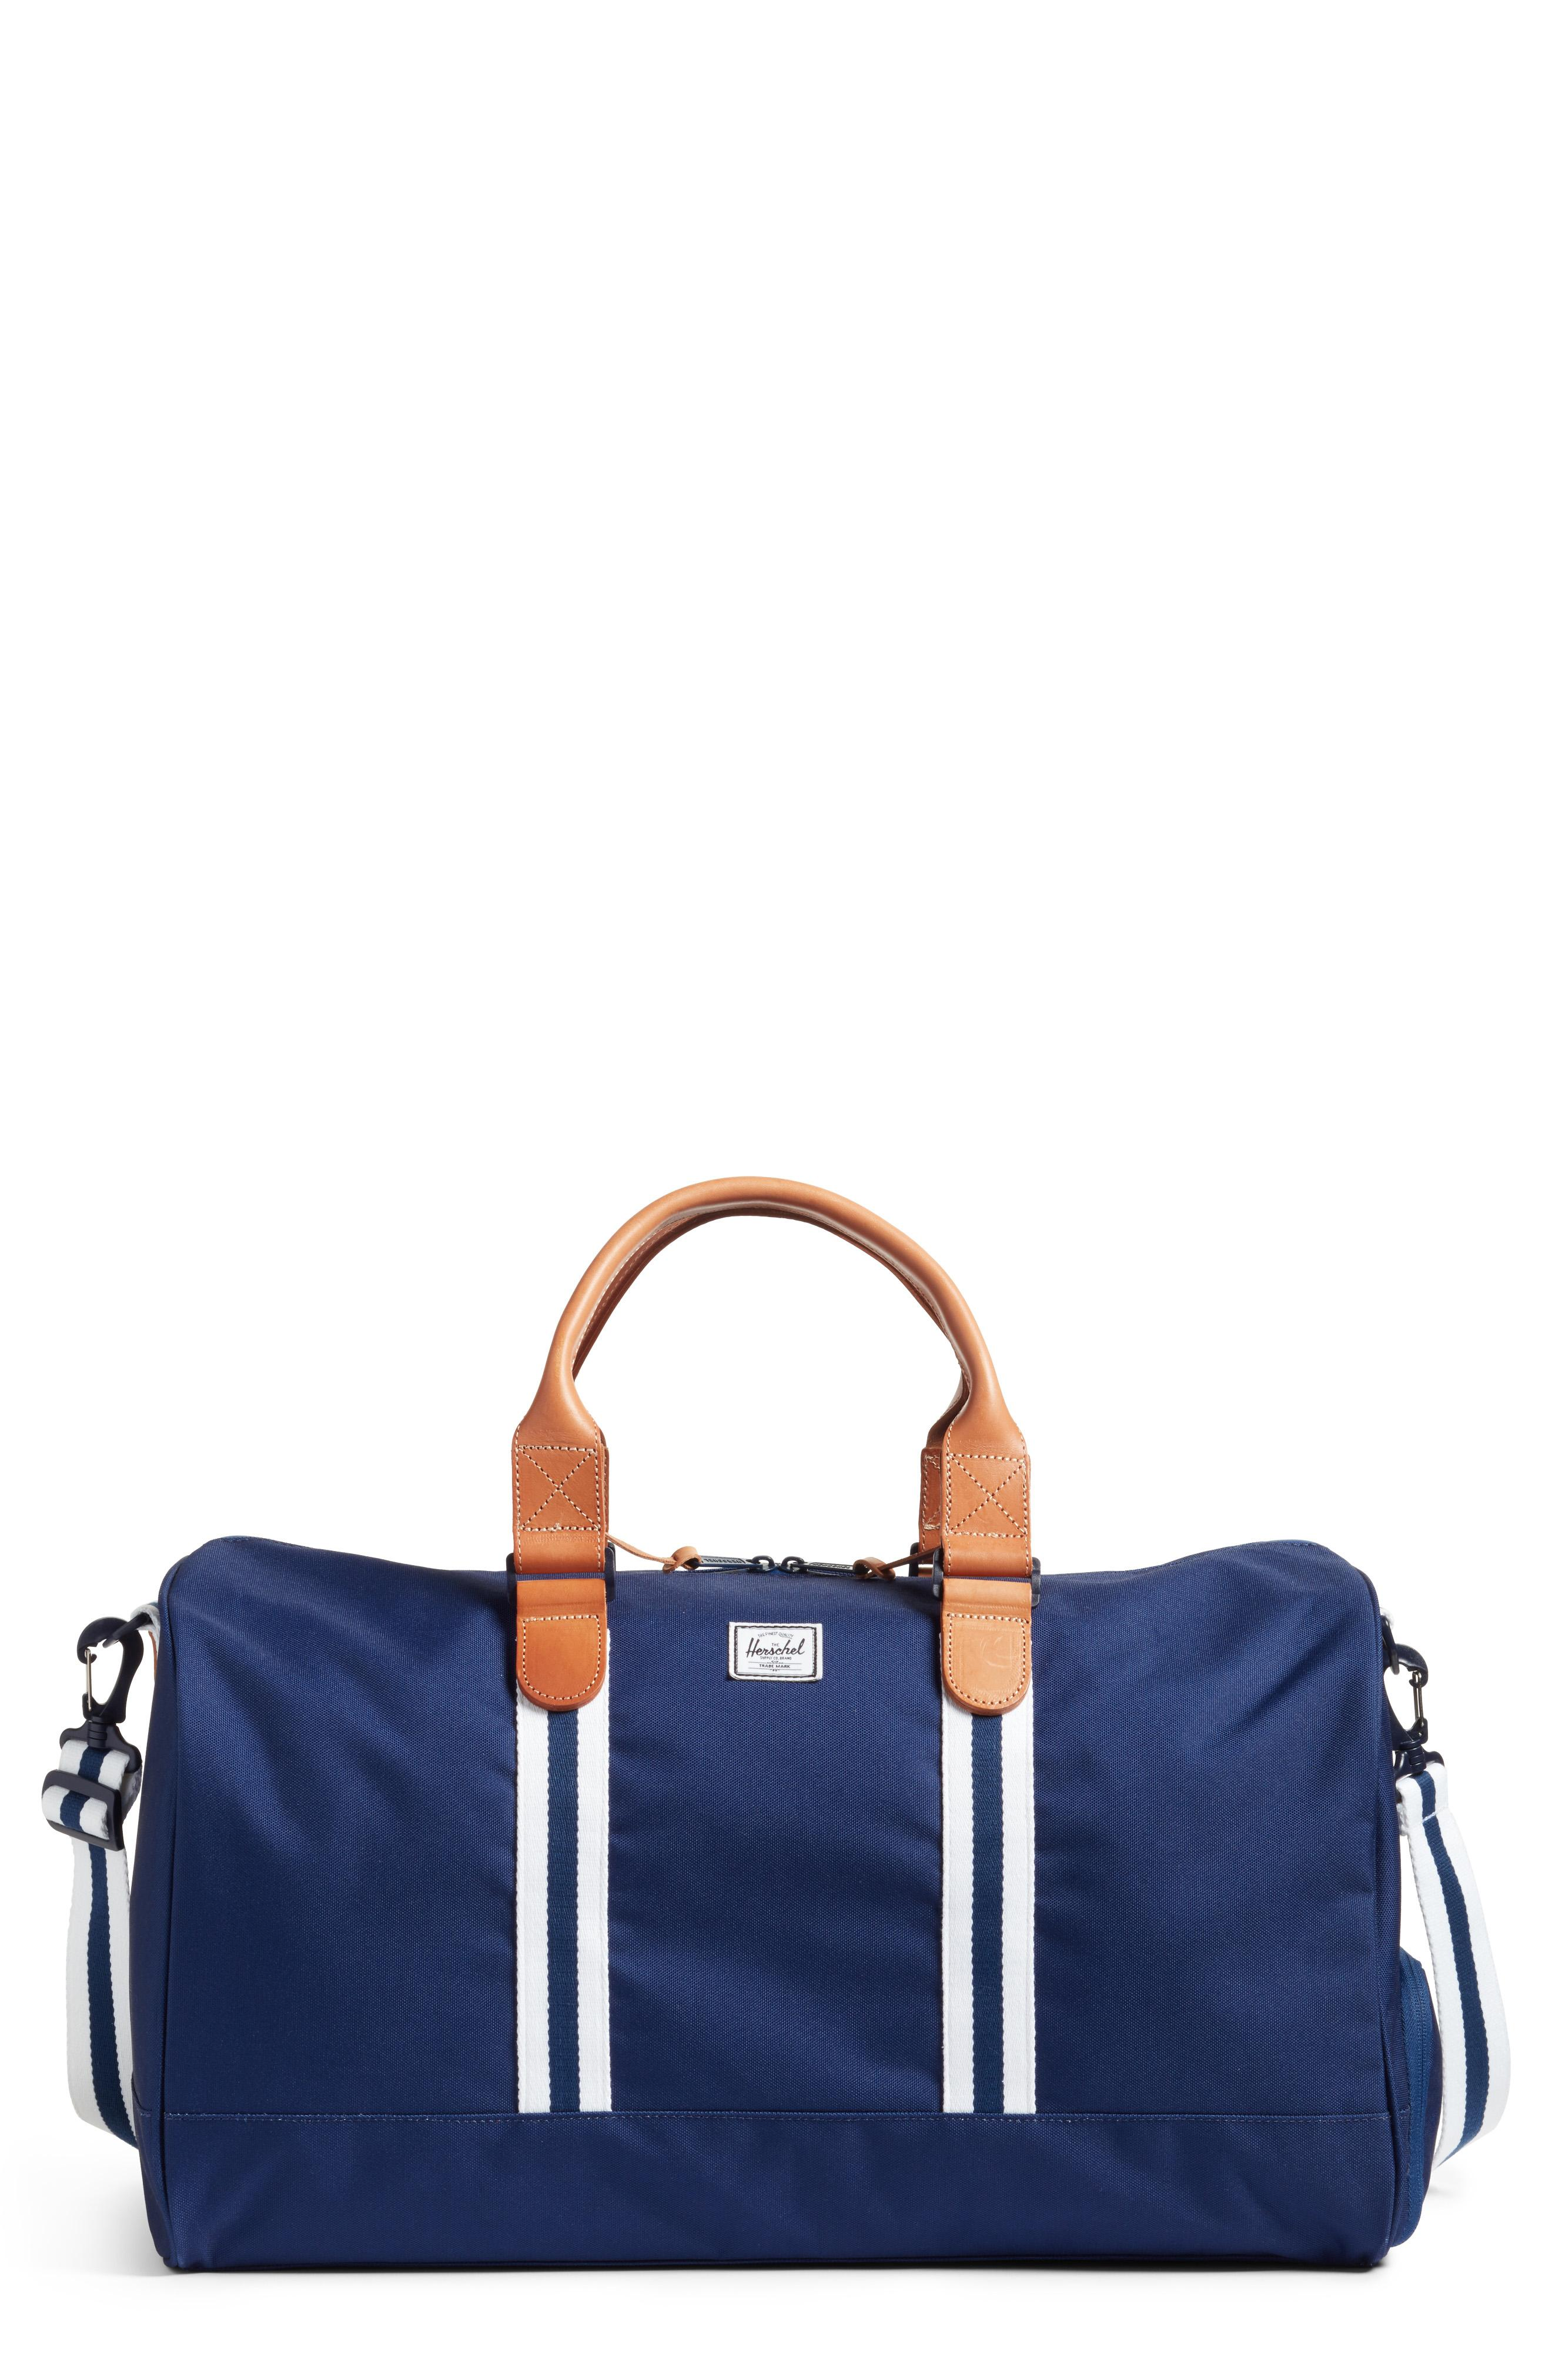 Herschel Supply Co. Novel Duffel Bag - Anniversary Price $79.90 (After Anniversary Price $120) (Image: Nordstrom)